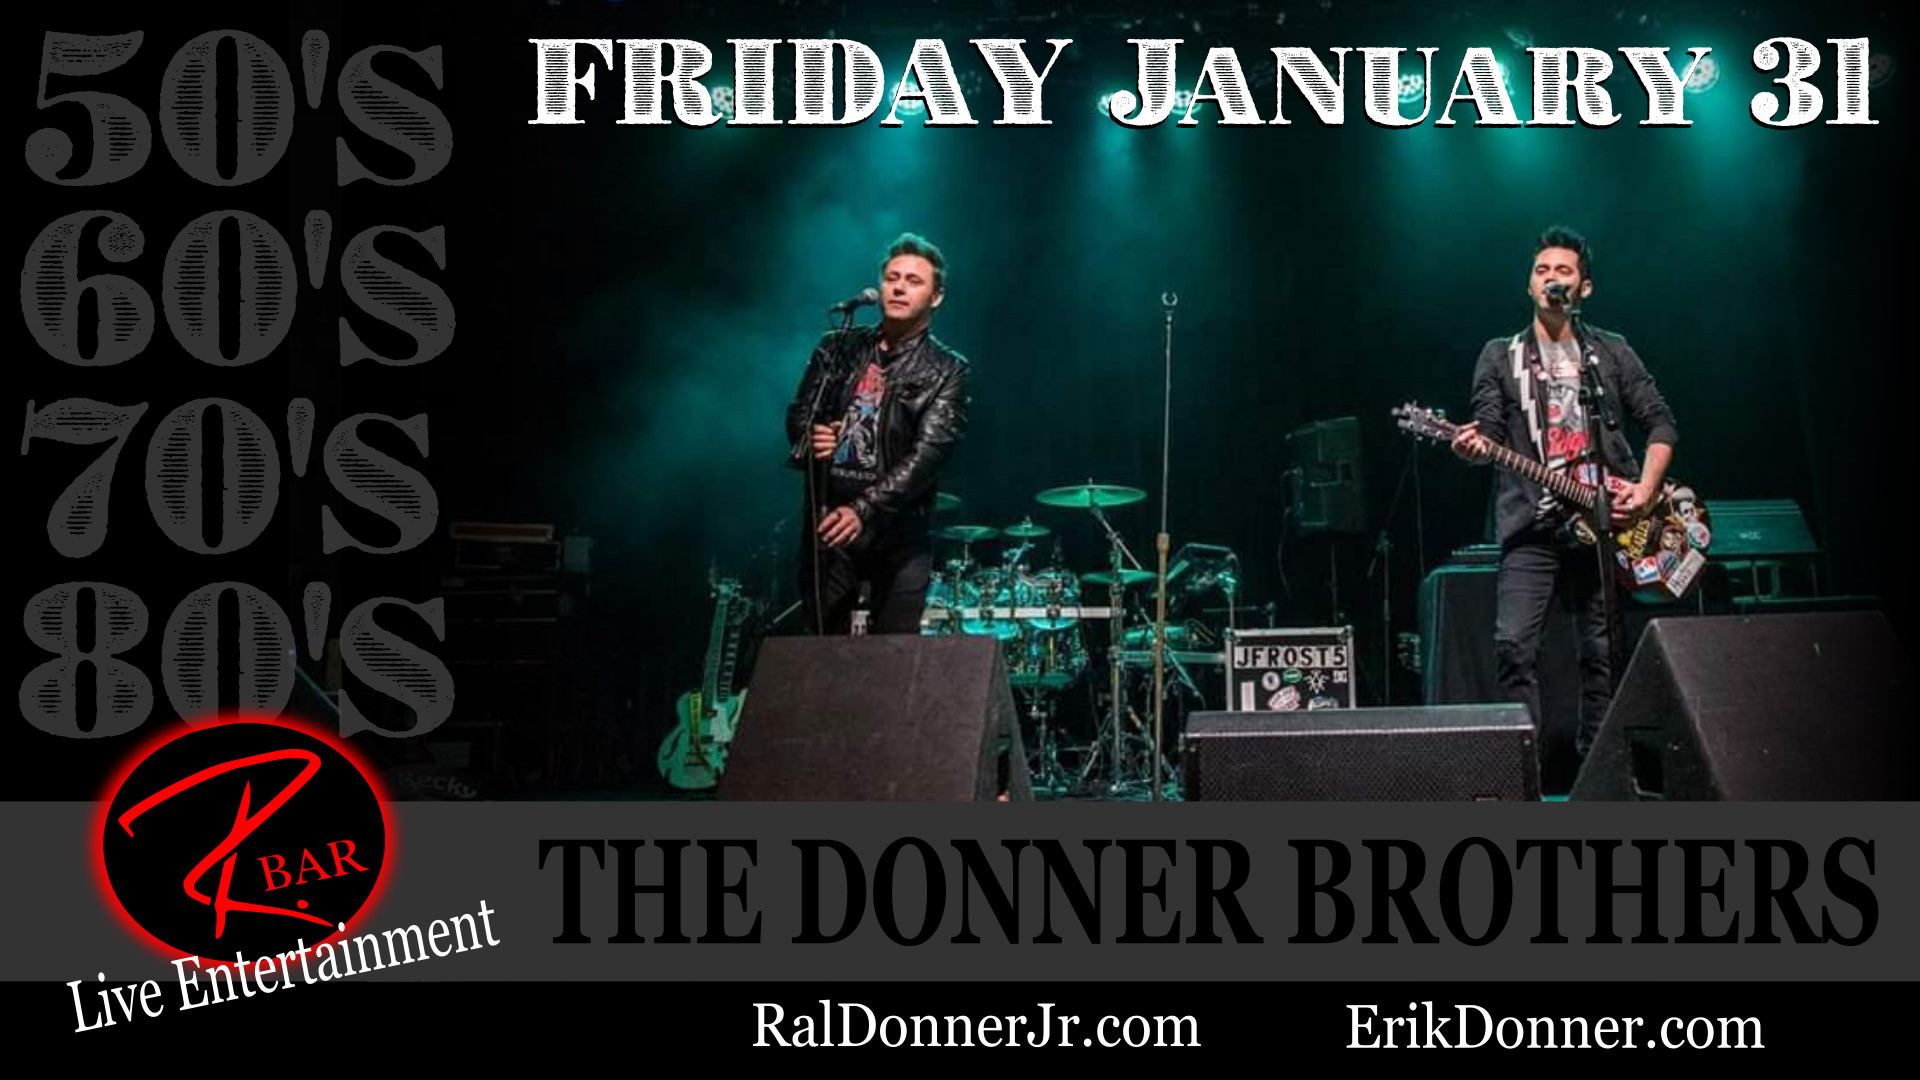 The Donner Brothers - LIVE at Evviva! @ Evviva! Bar & Eatery